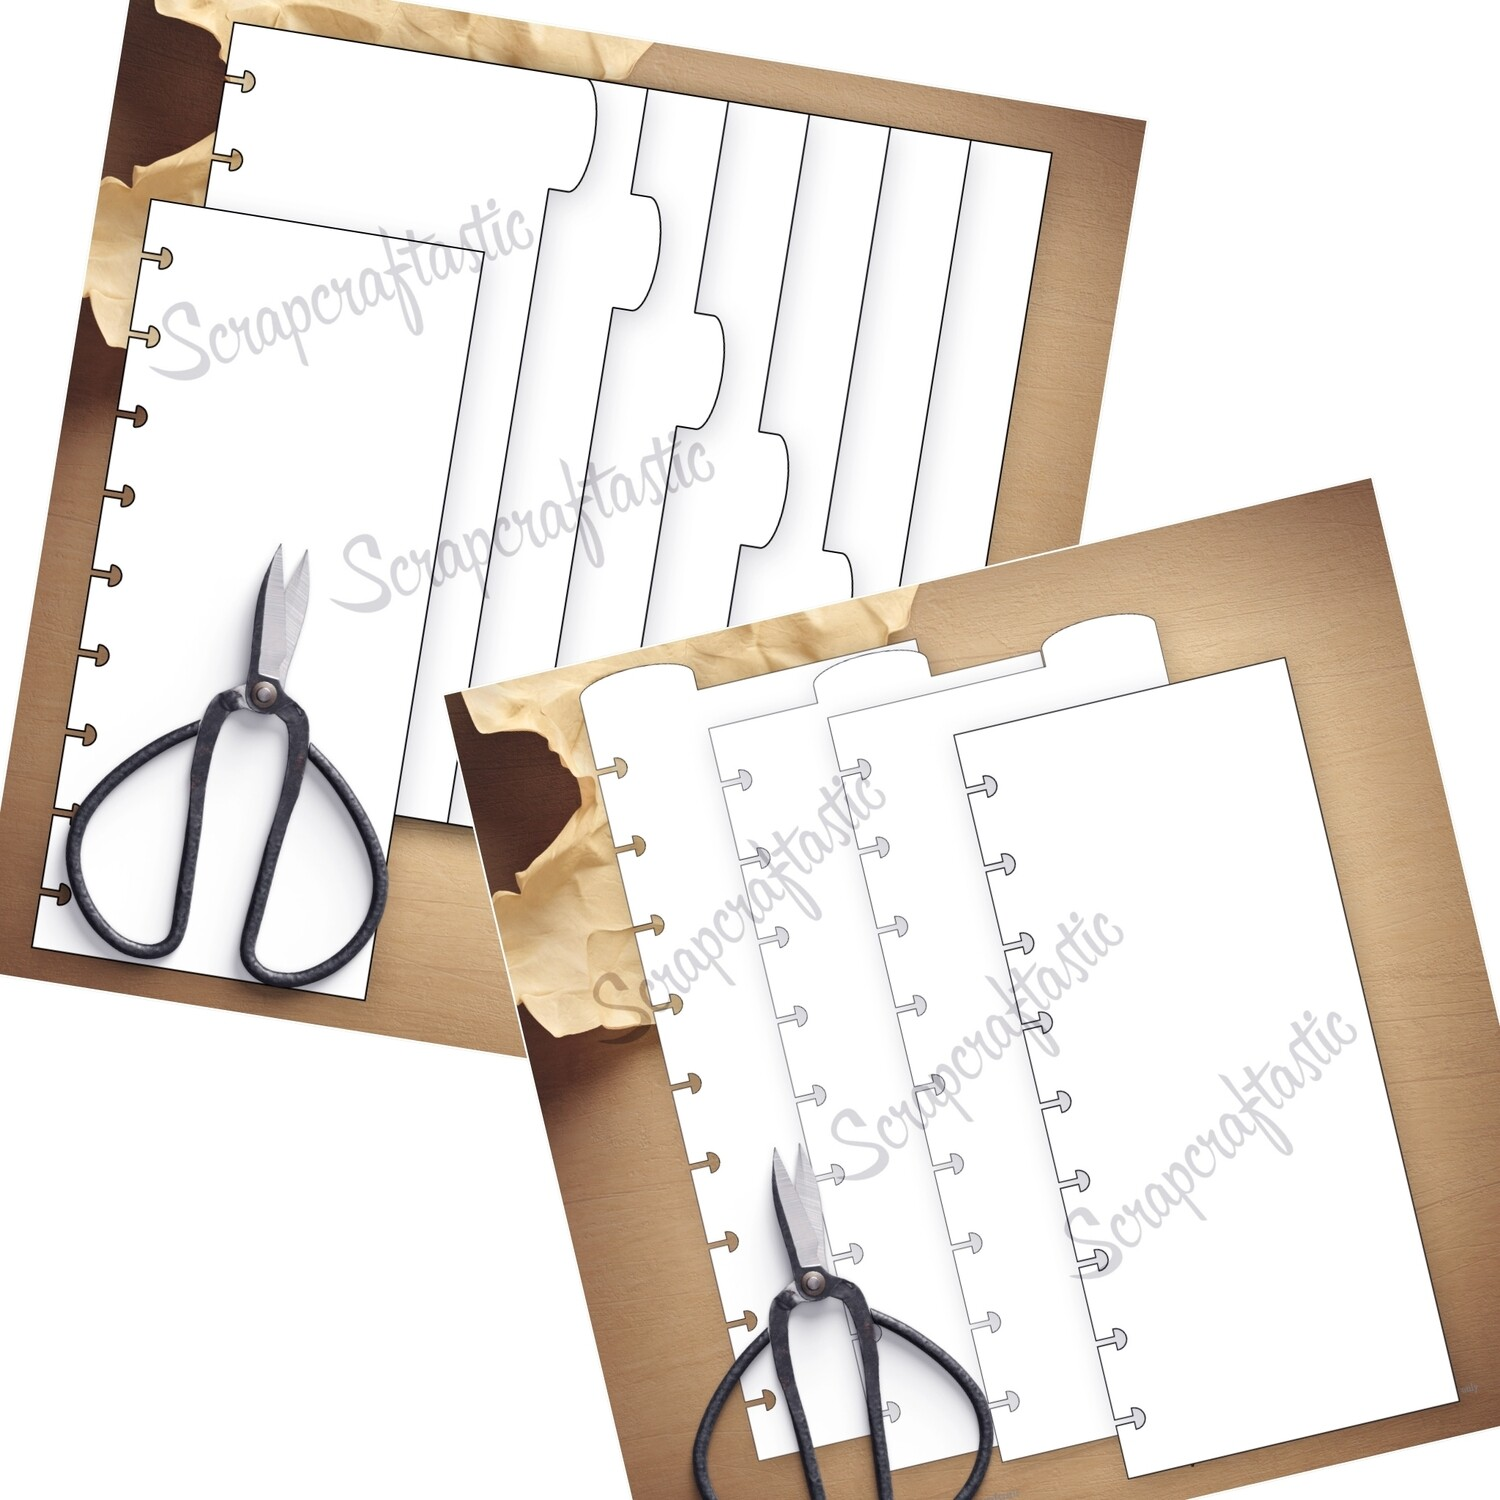 BUNDLE - CLASSIC HALF SHEET 7 Rounded Side Tab Dividers and 3 Rounded Top Tab Dividers Printable Templates and Cut Files (punched and not punched)